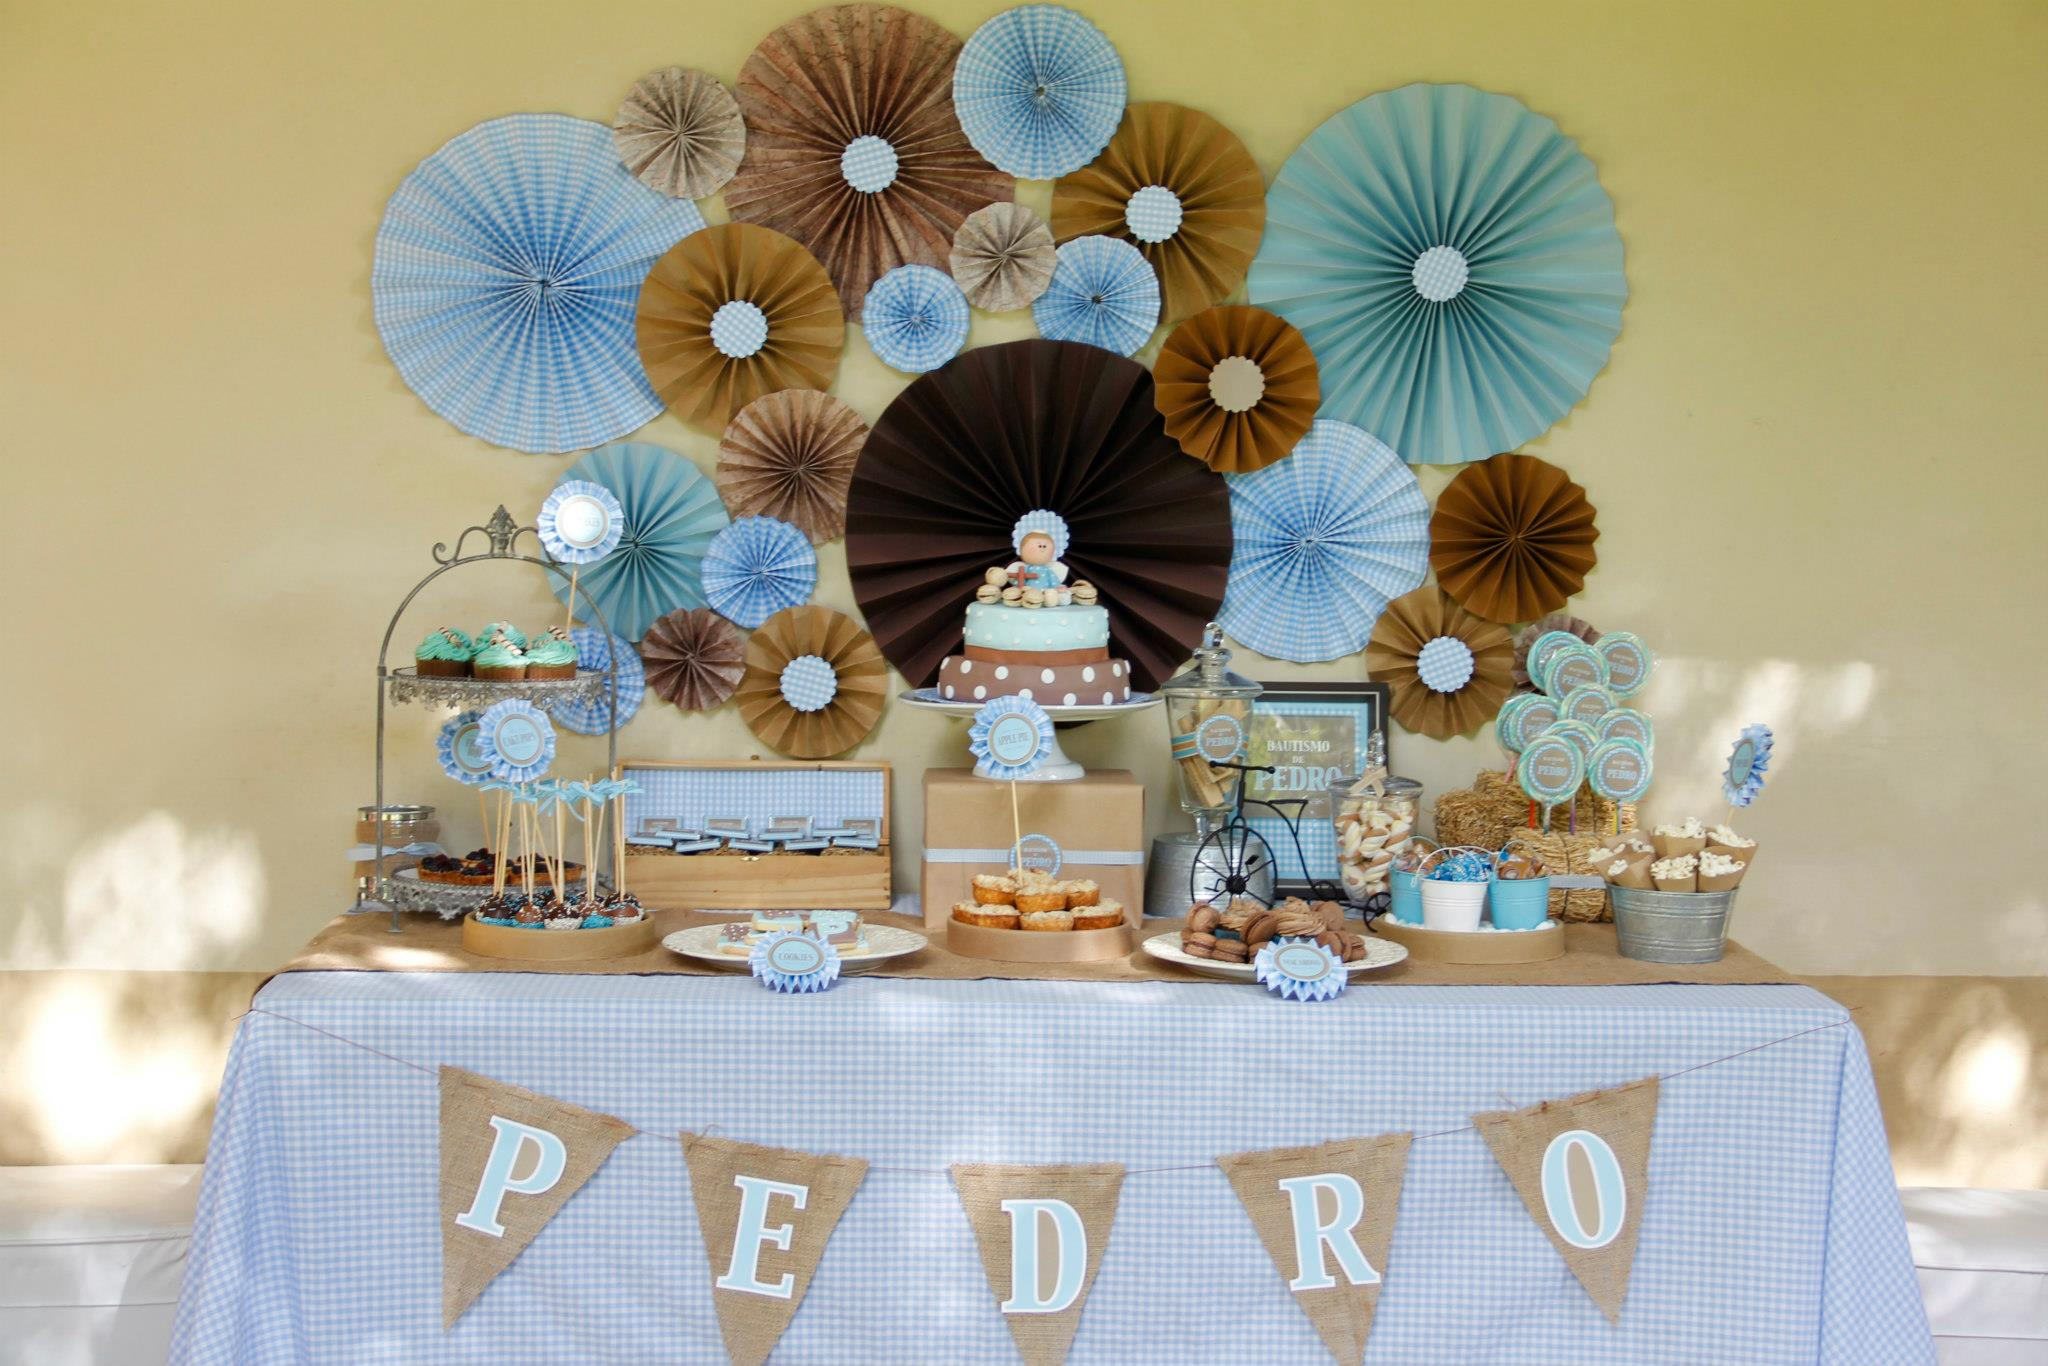 Cakes and co party planning styling bautismo de - Articulos para decoracion bautizo nino ...